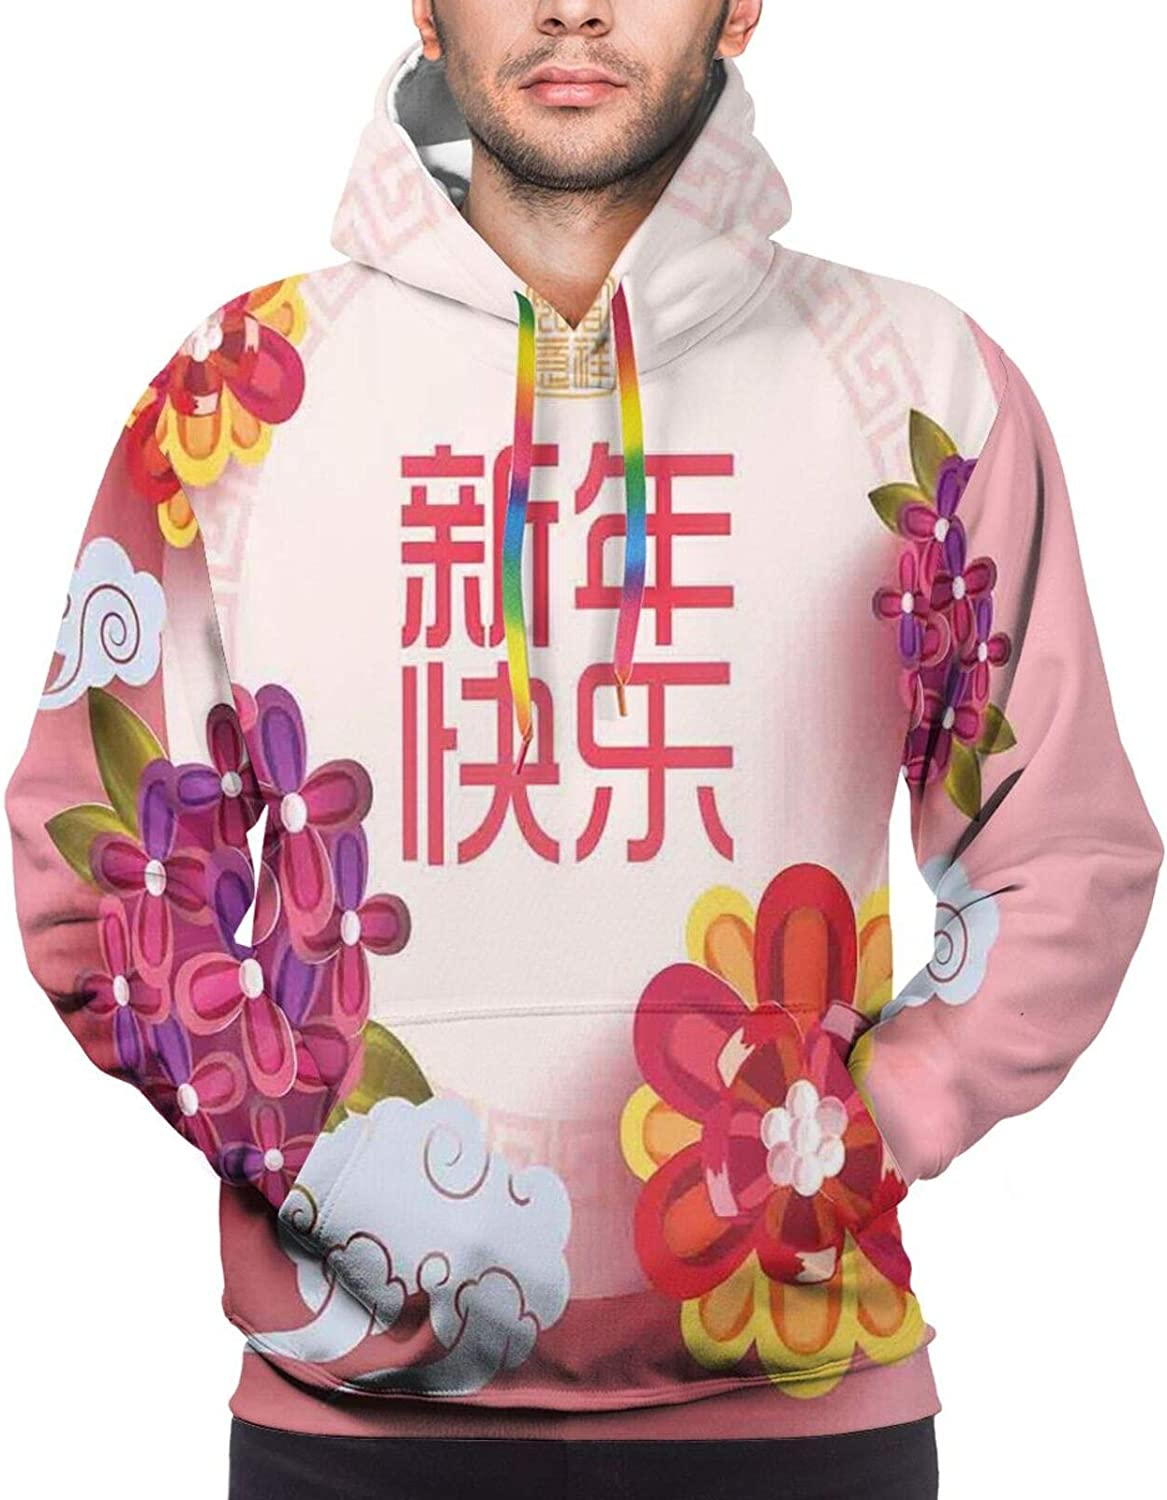 Men's Hoodies Sweatshirts,Pale Italian Style Curly Flowers in Squares Artistic Retro Composition